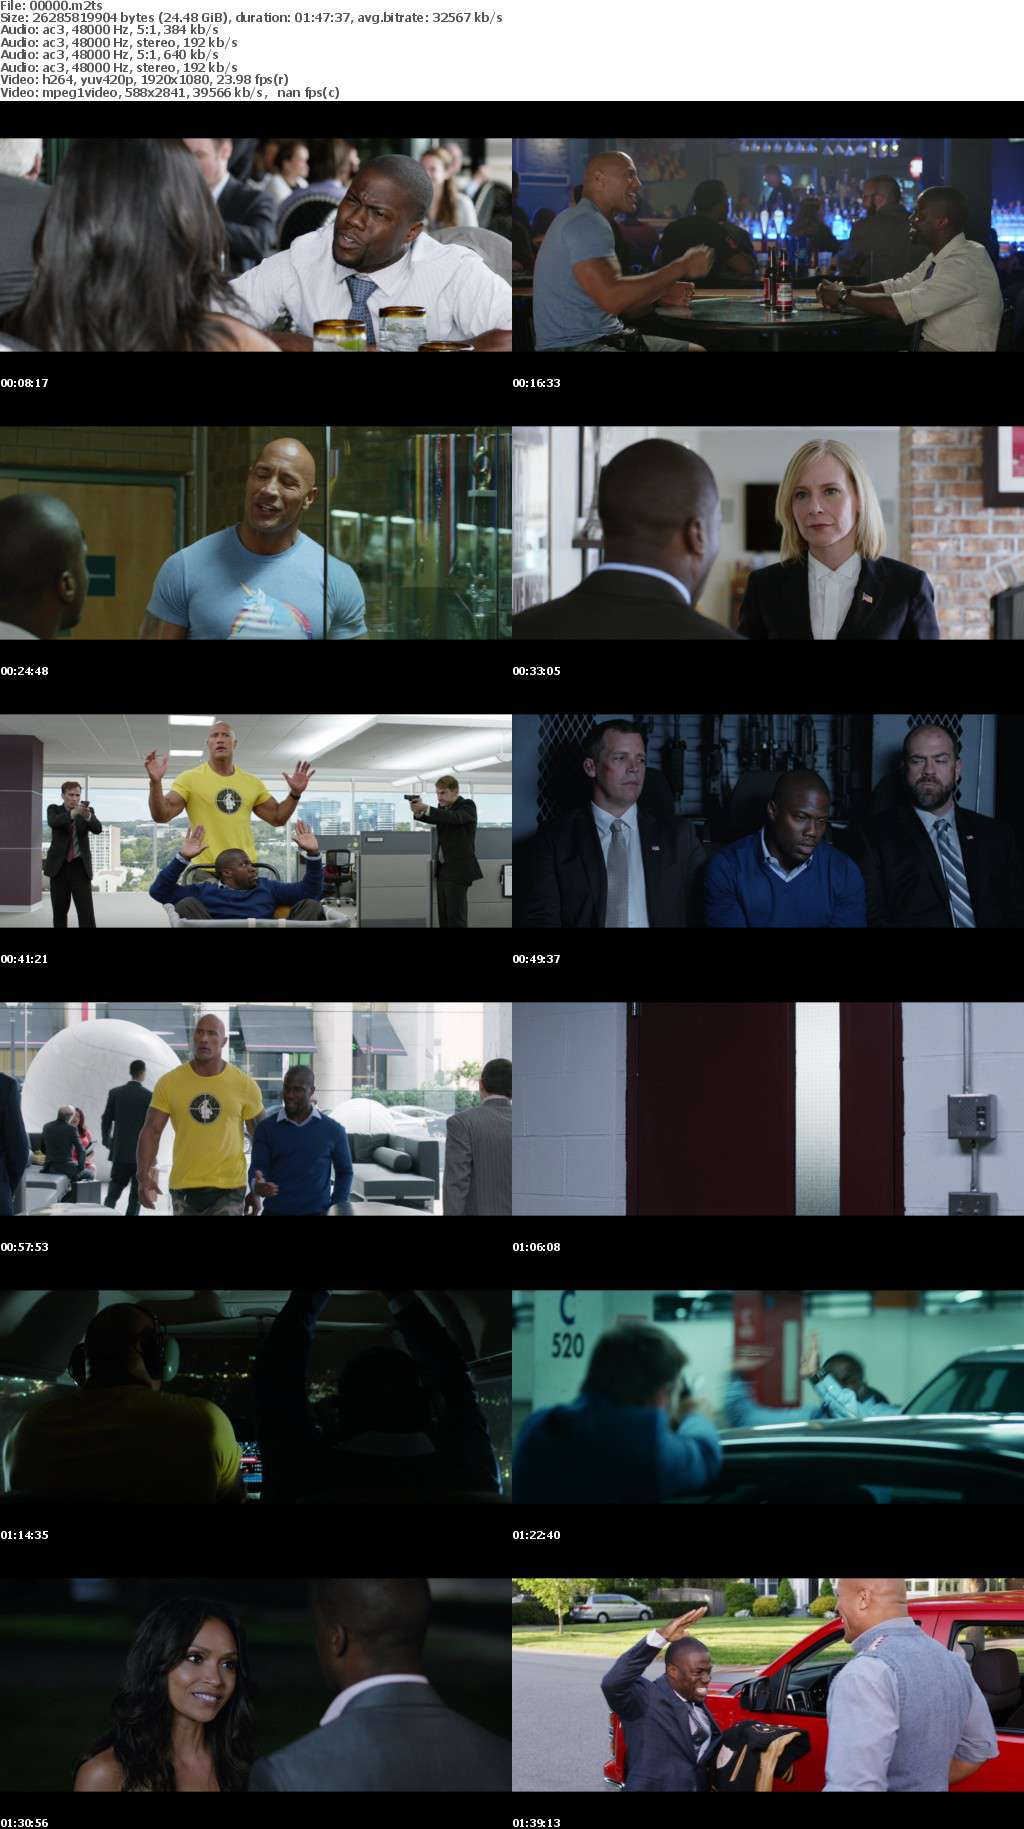 Central Intelligence (2016) [Theatrical Cut] 1080p BD-Remux